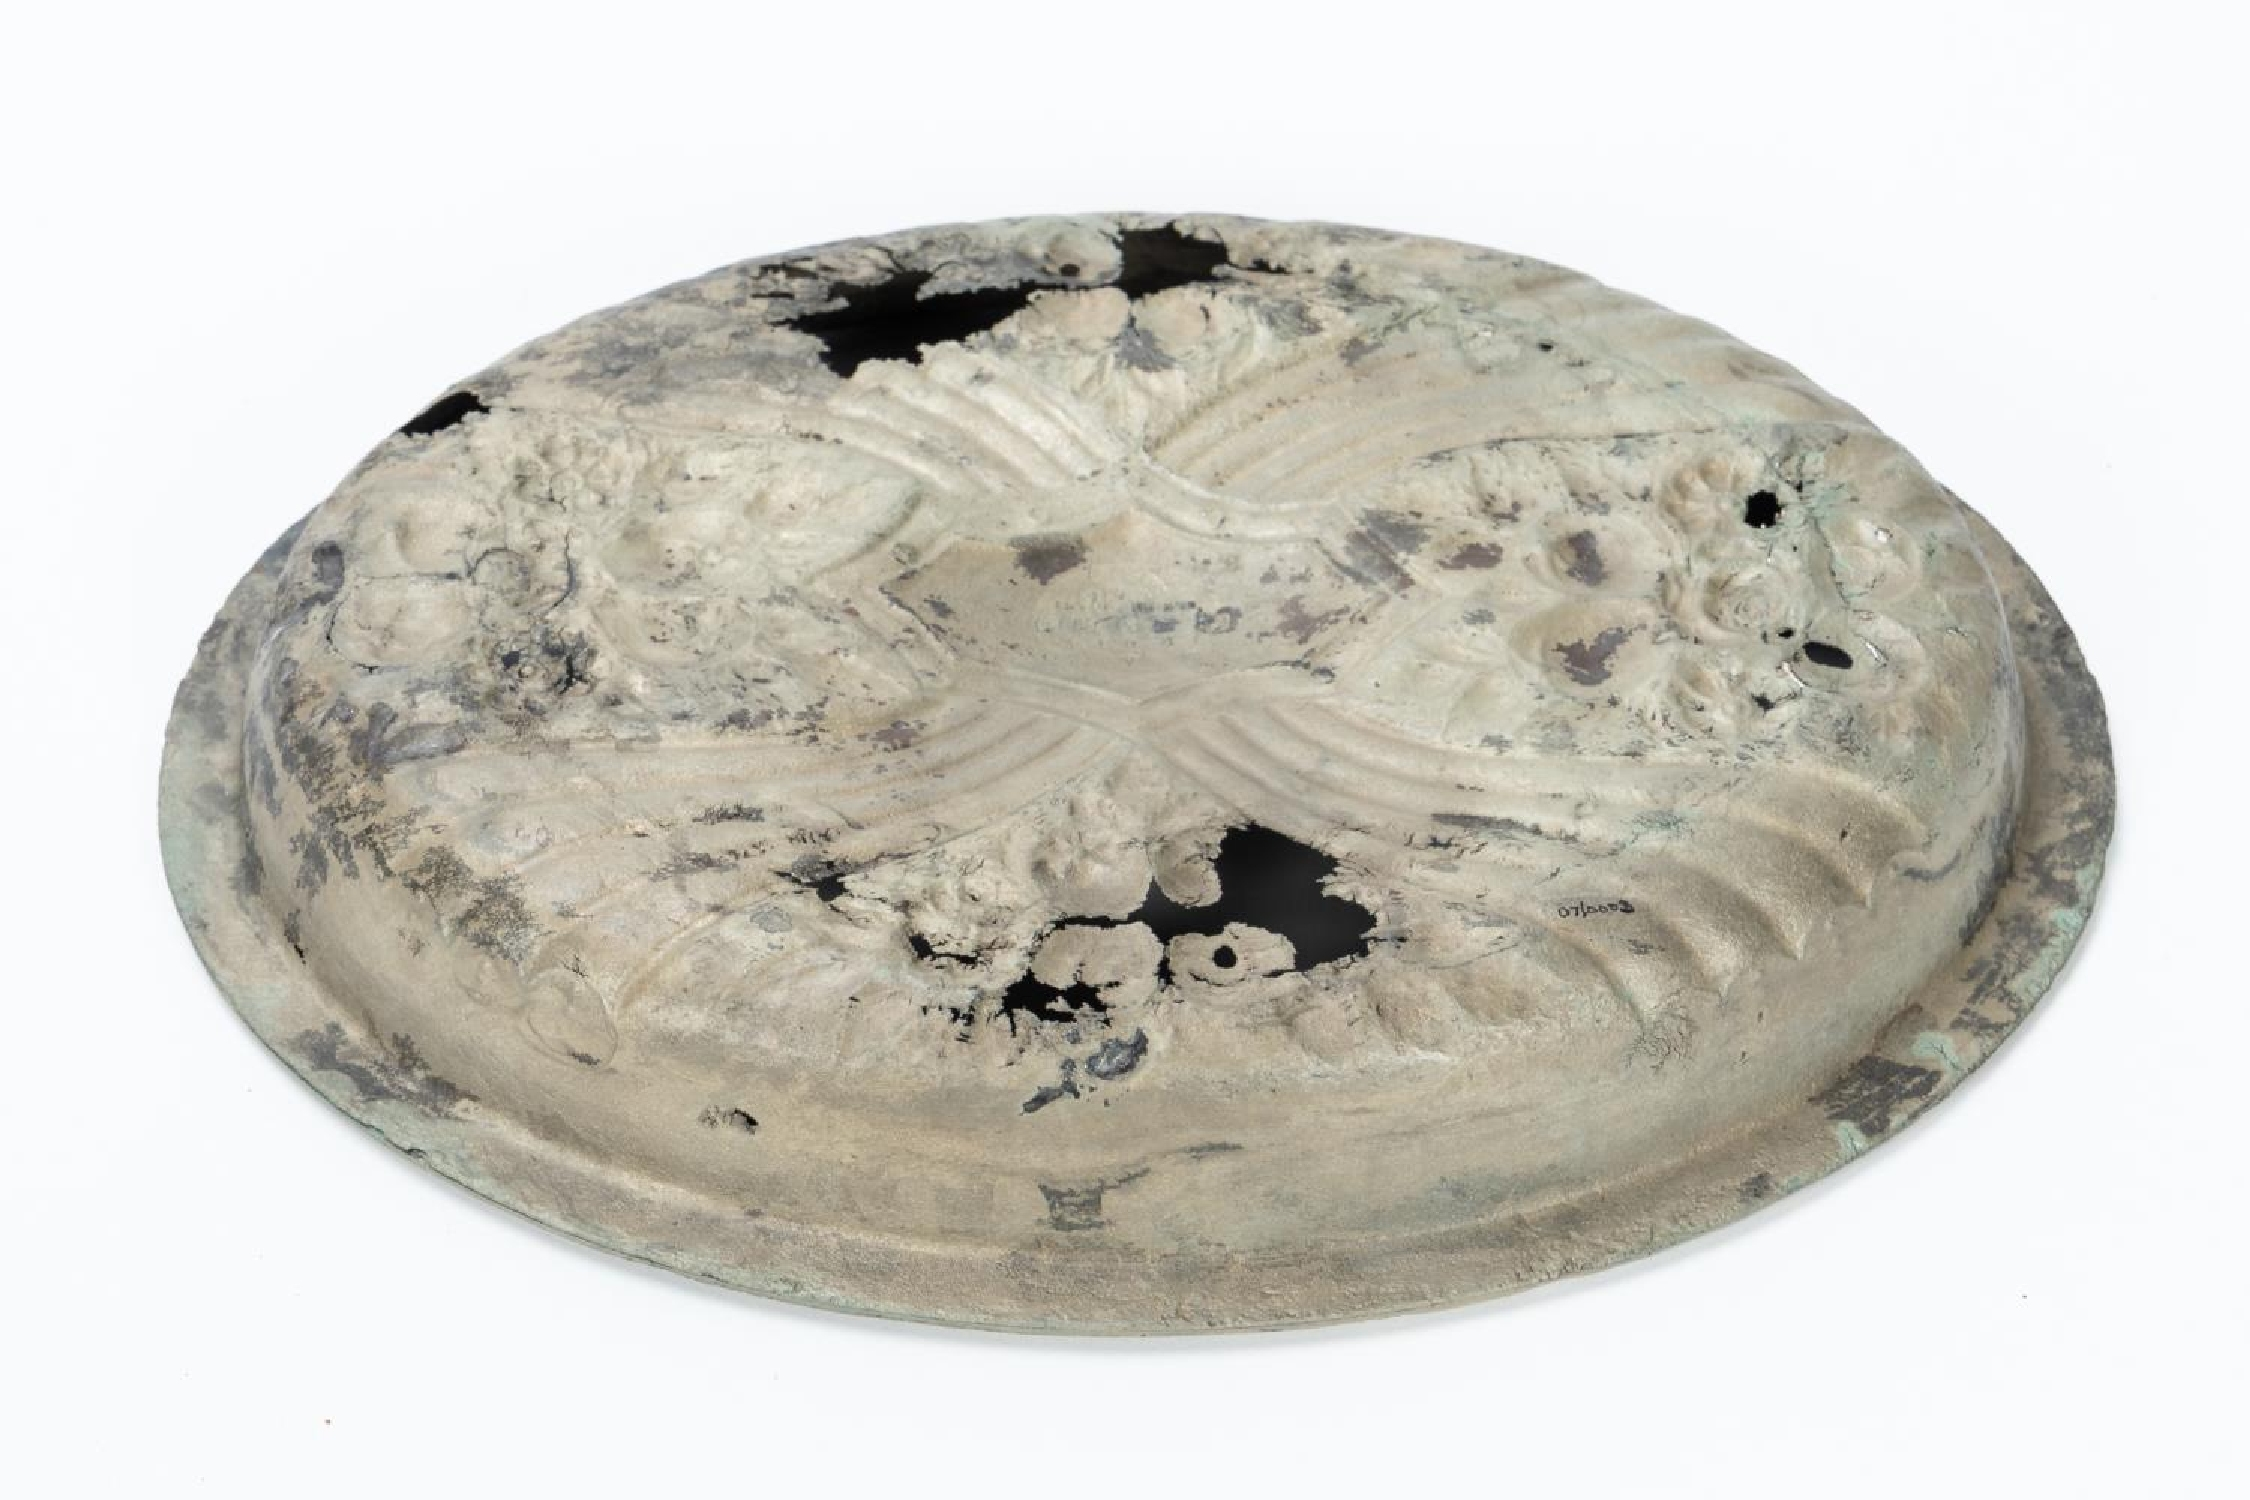 RMS CARPATHIA, SALVAGED SILVERPLATE SERVING DISH - Image 2 of 7